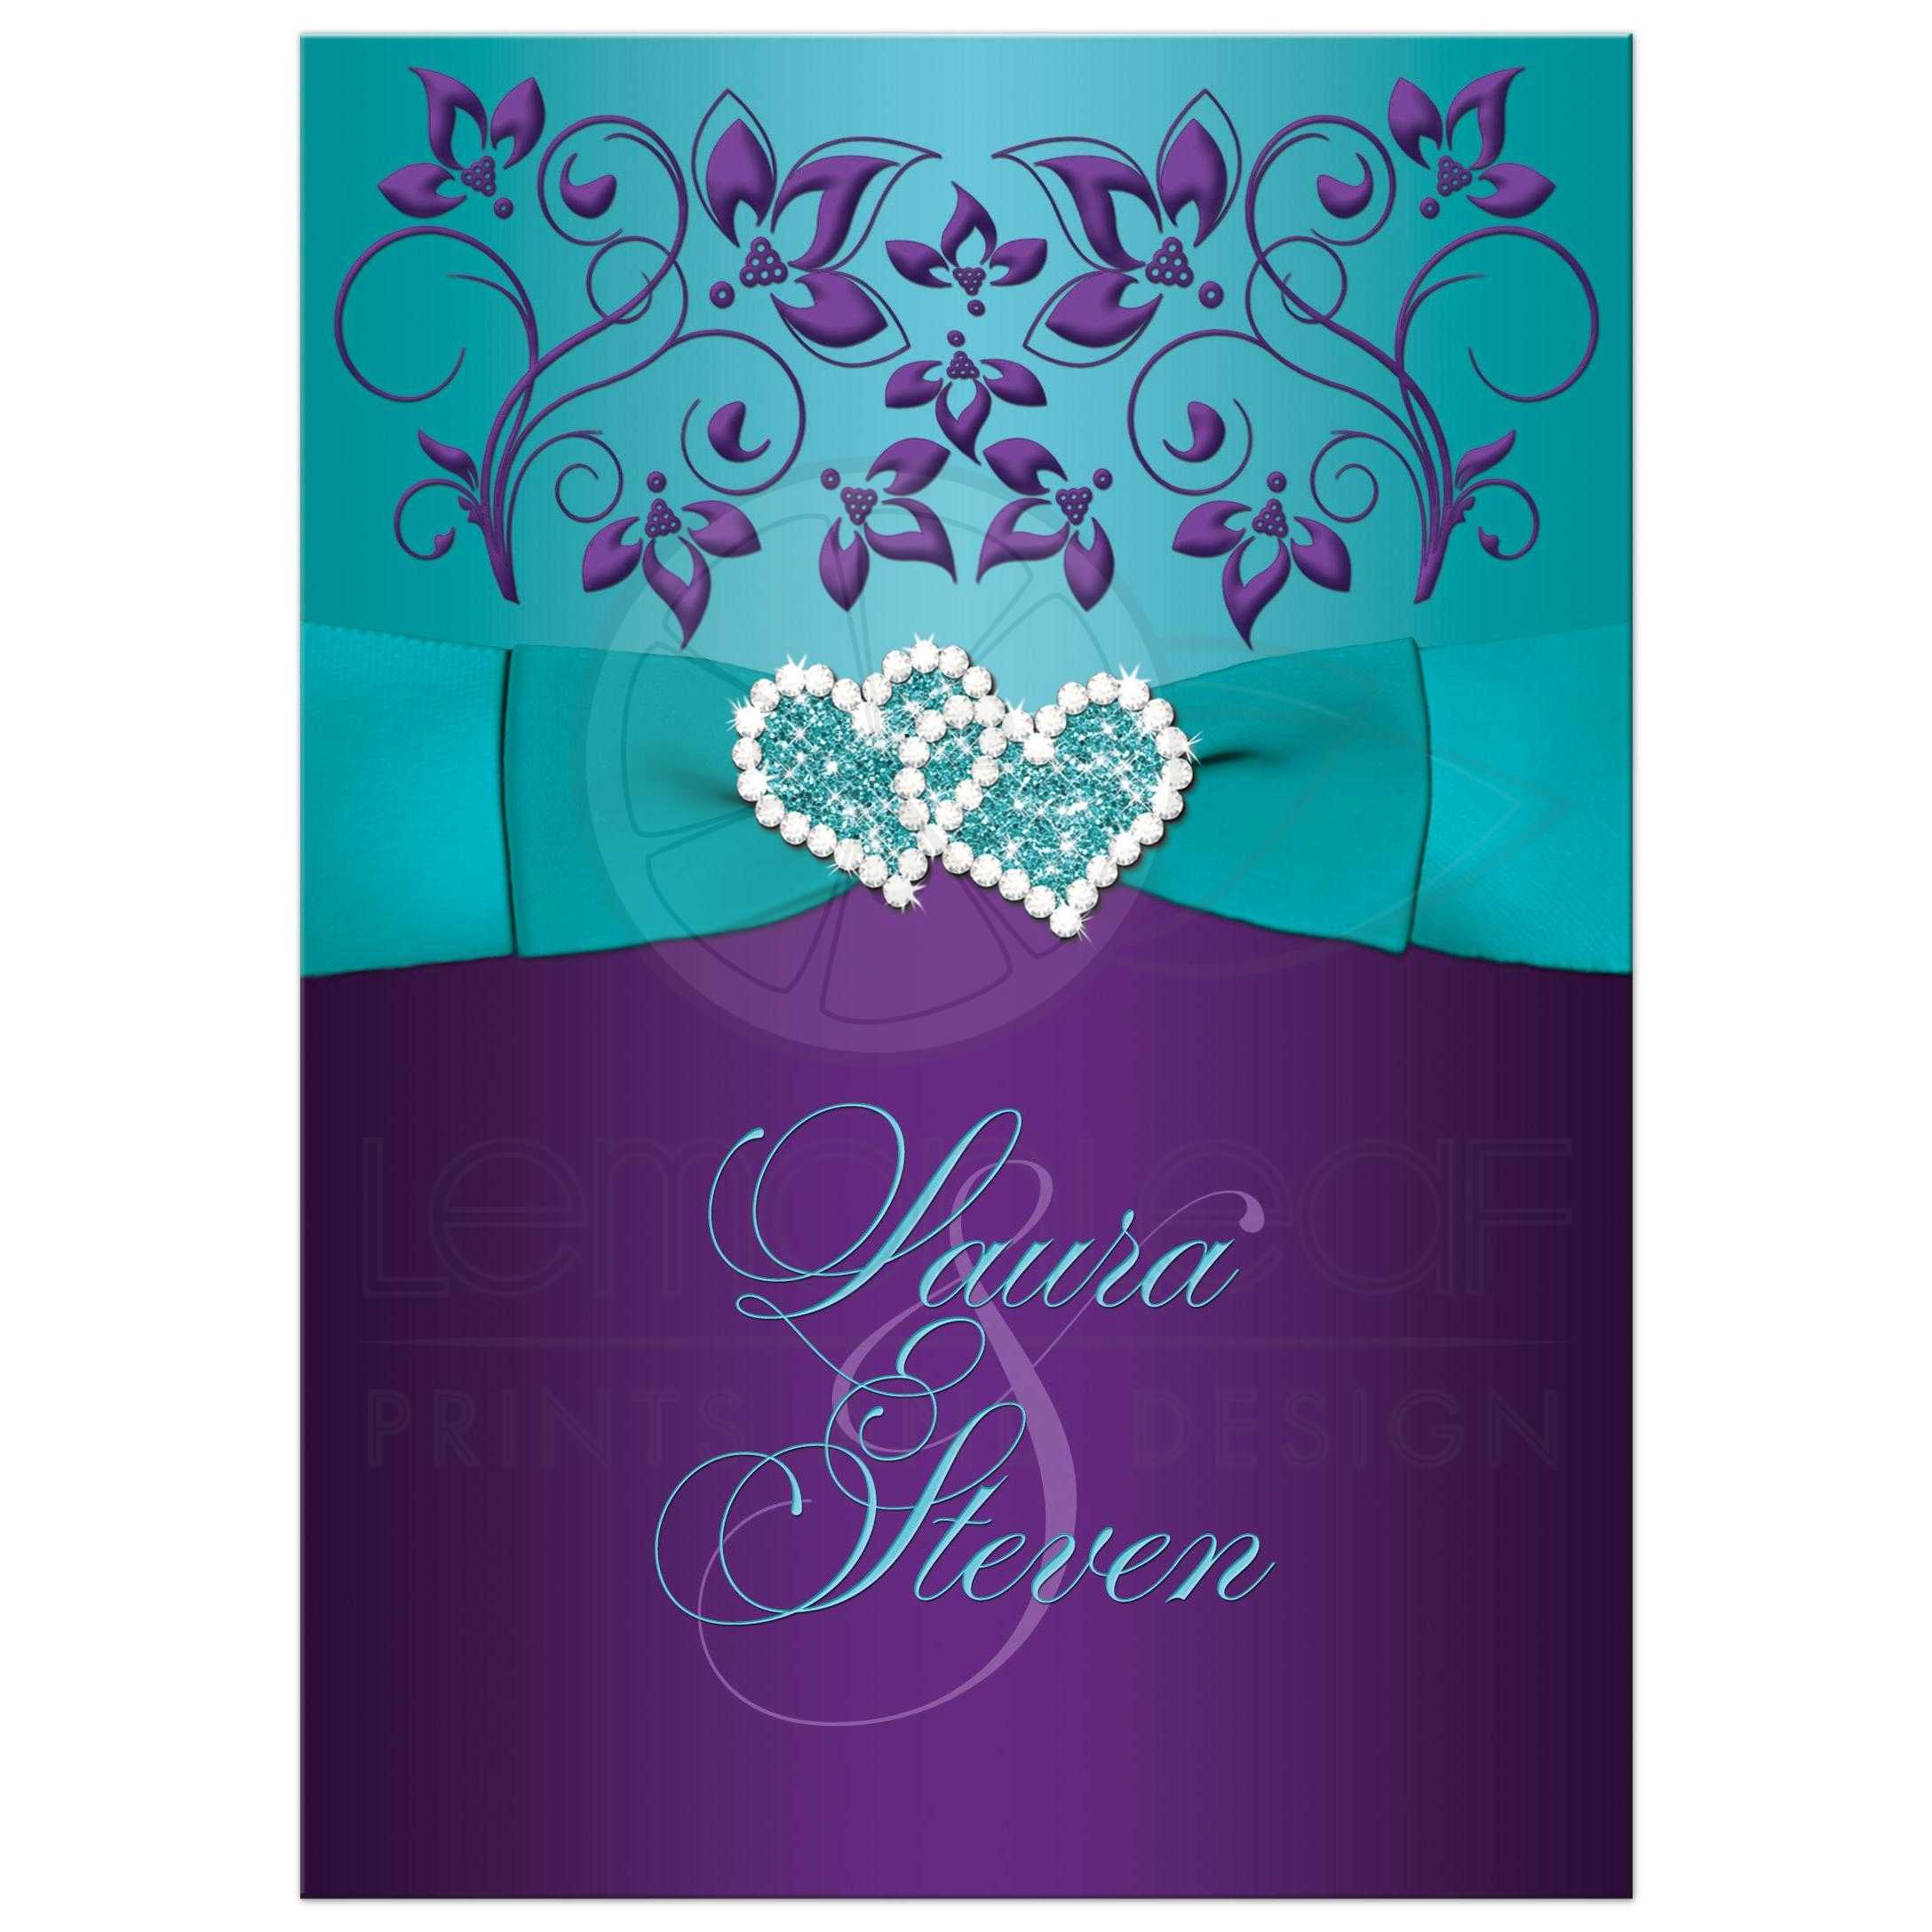 blue and purple invitations - Yeni.mescale.co